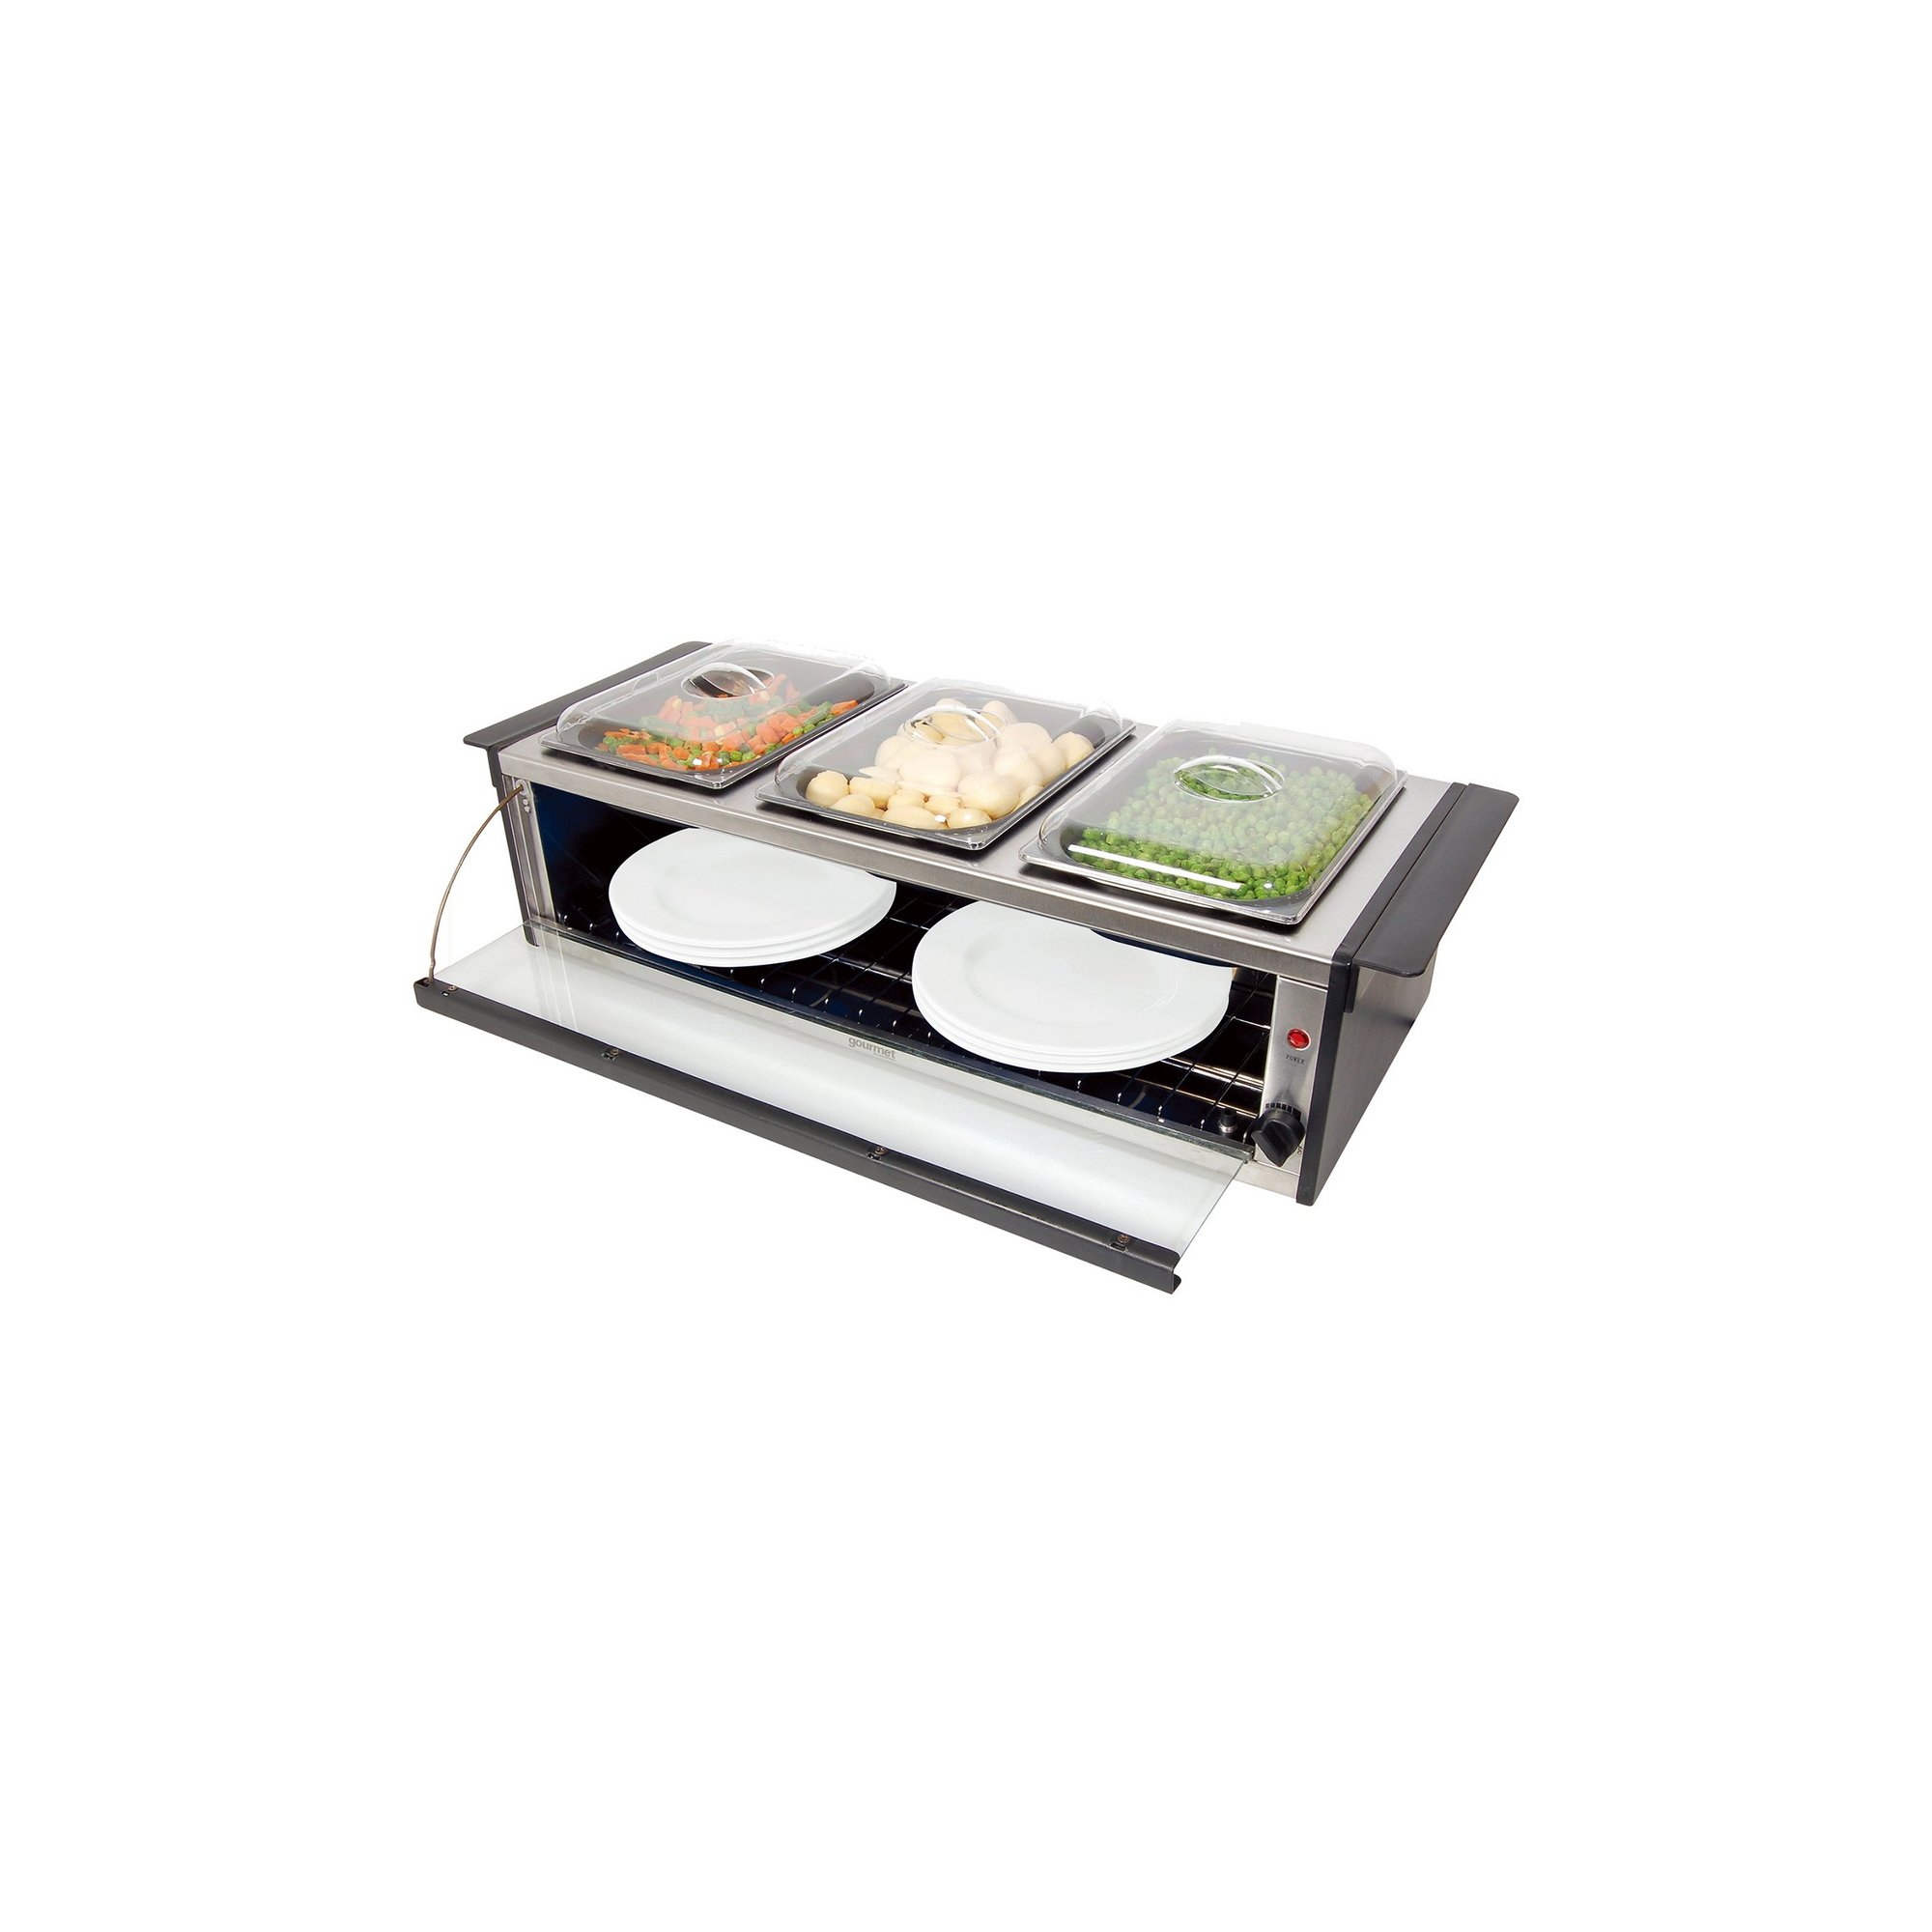 Image of Gourmet Hostess Serving Station with Plate Warmer